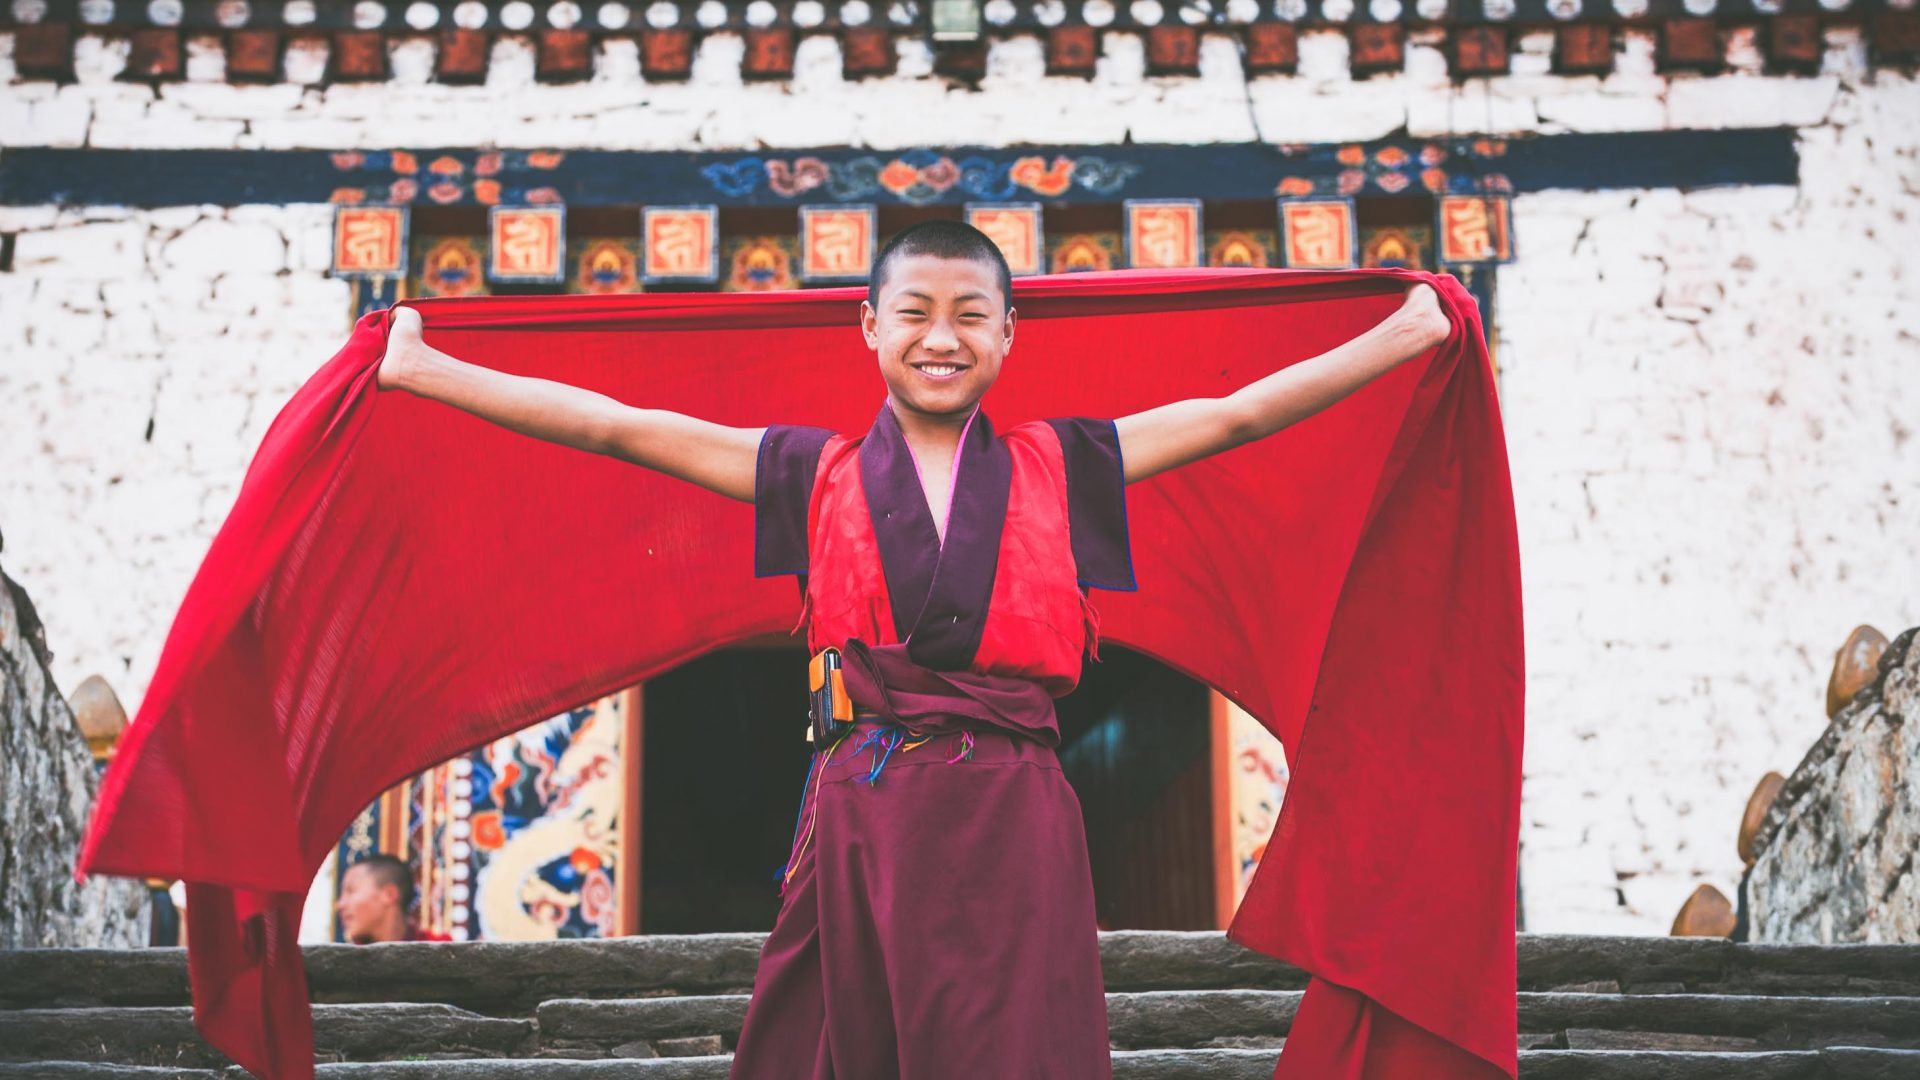 Measuring happiness: Is Bhutan really the world's happiest country?